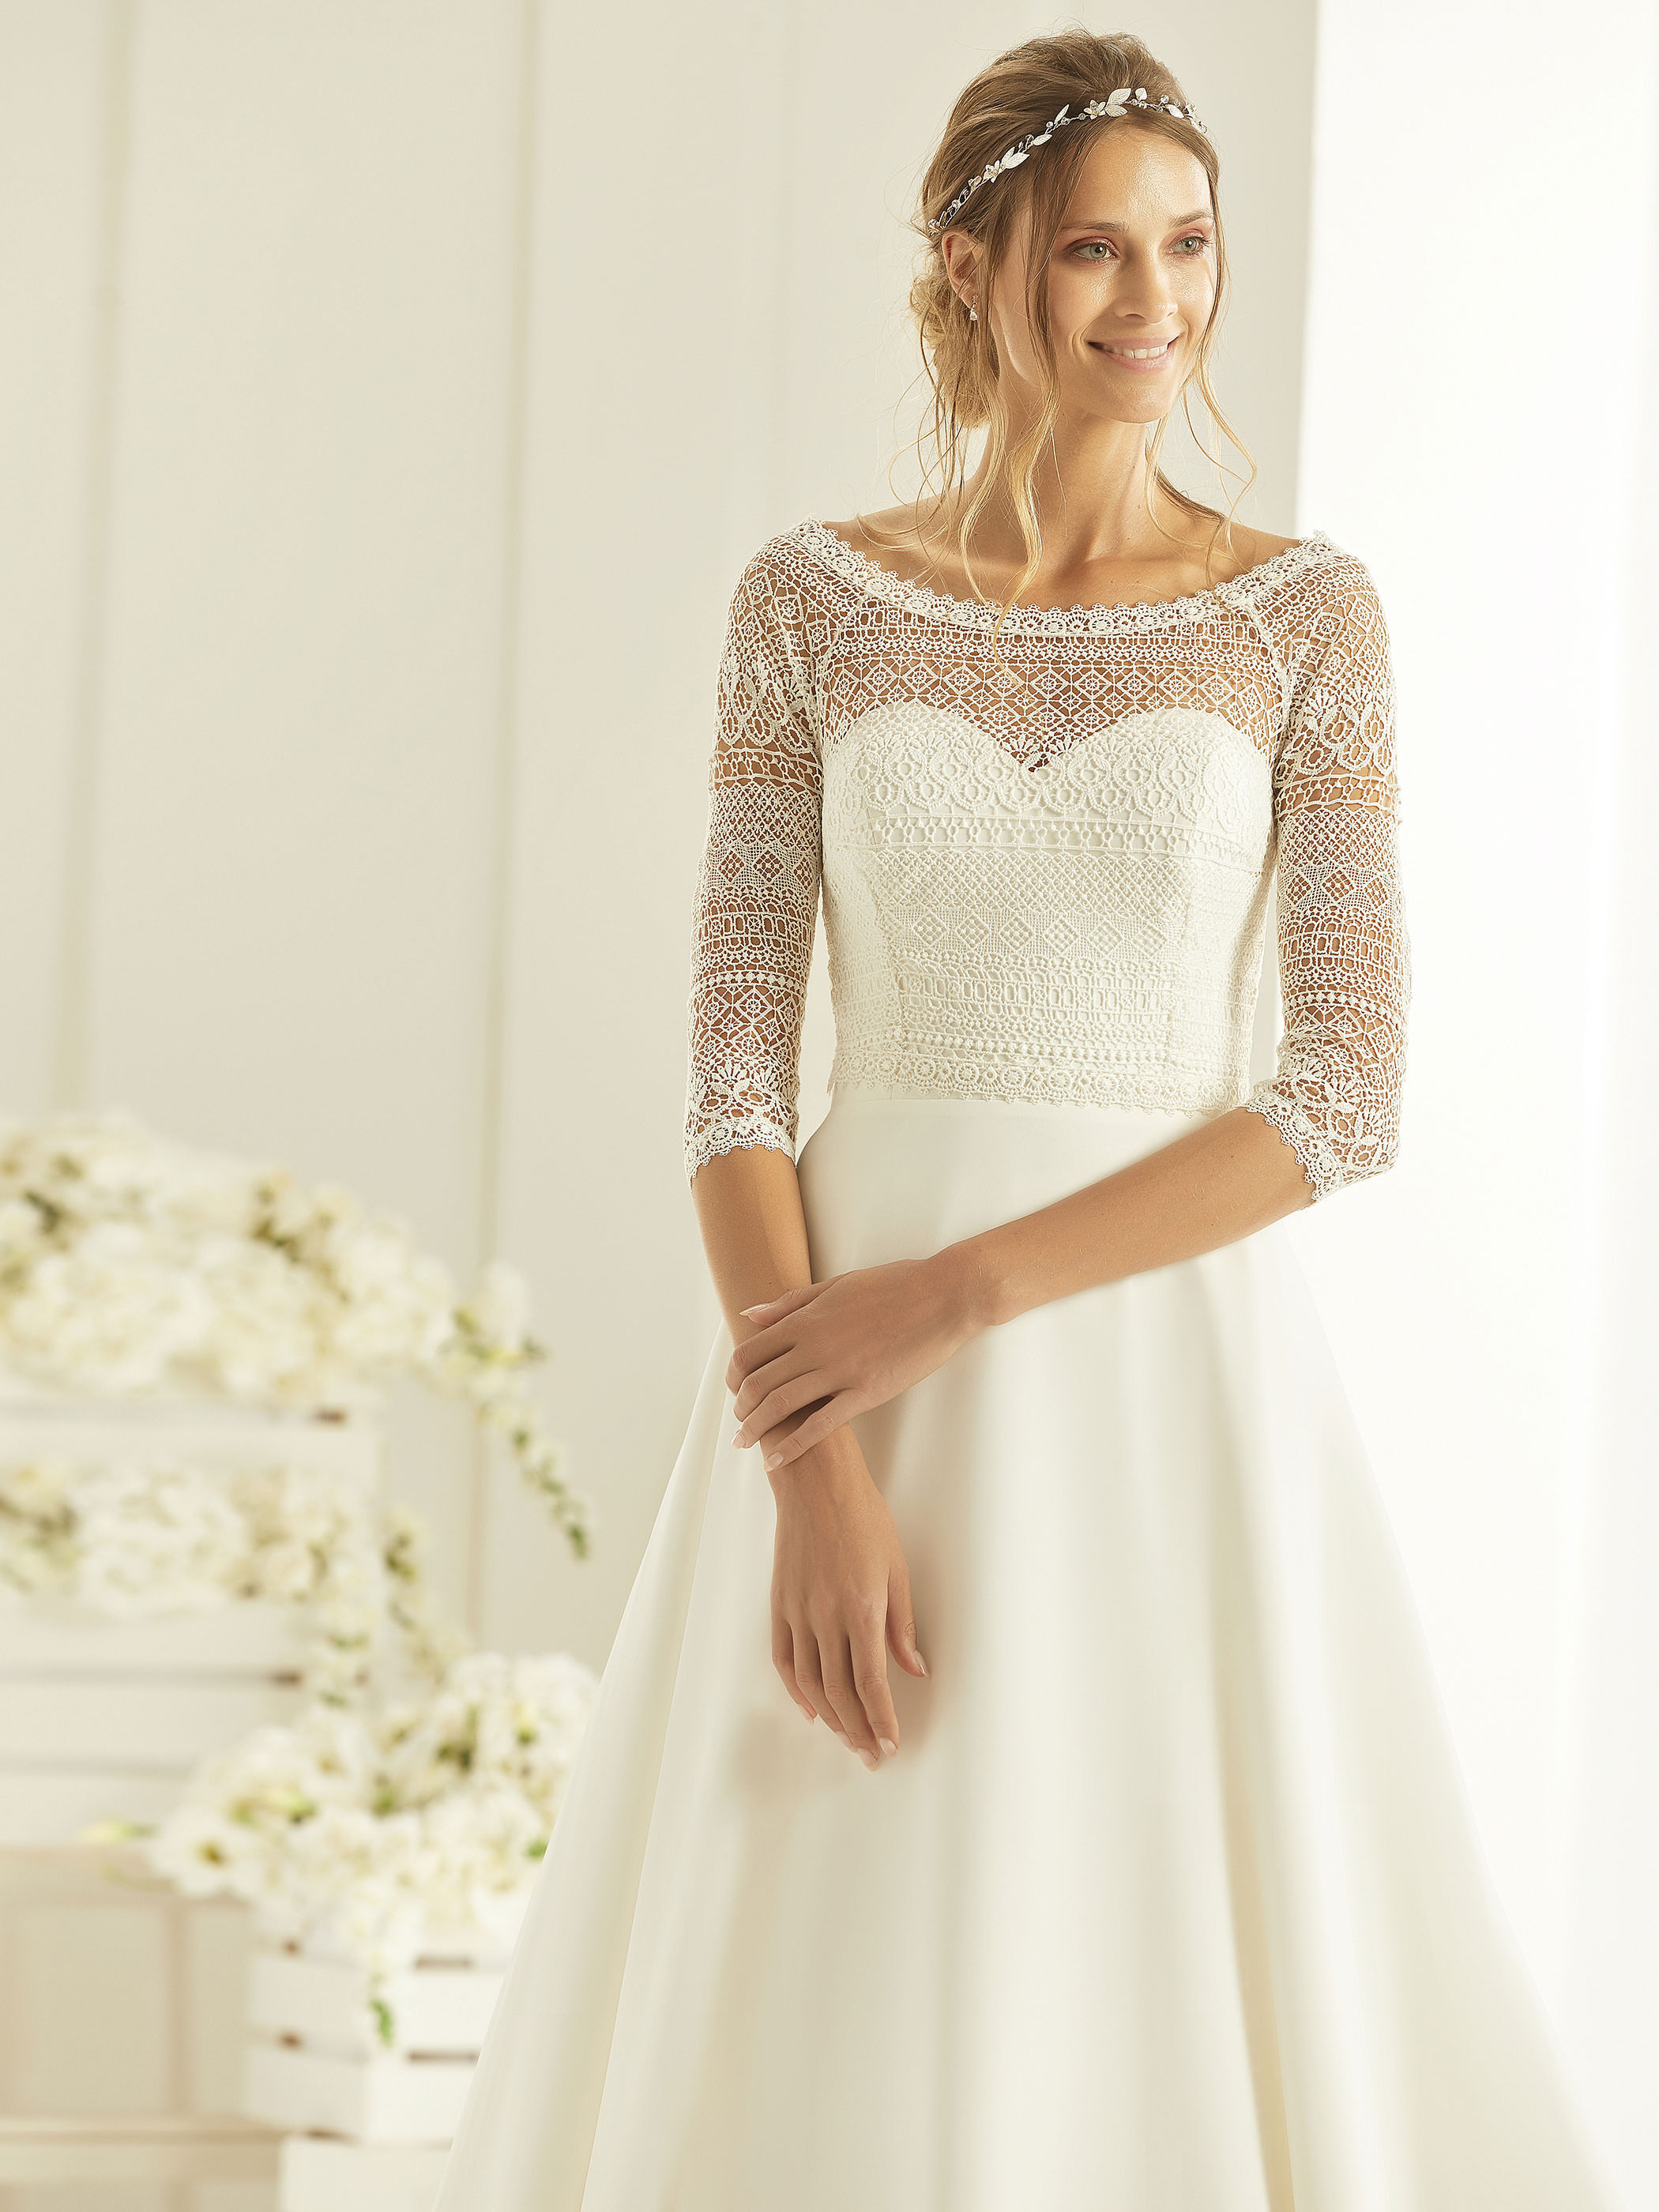 bianco-evento-bridal-dress-harmonia-_2__